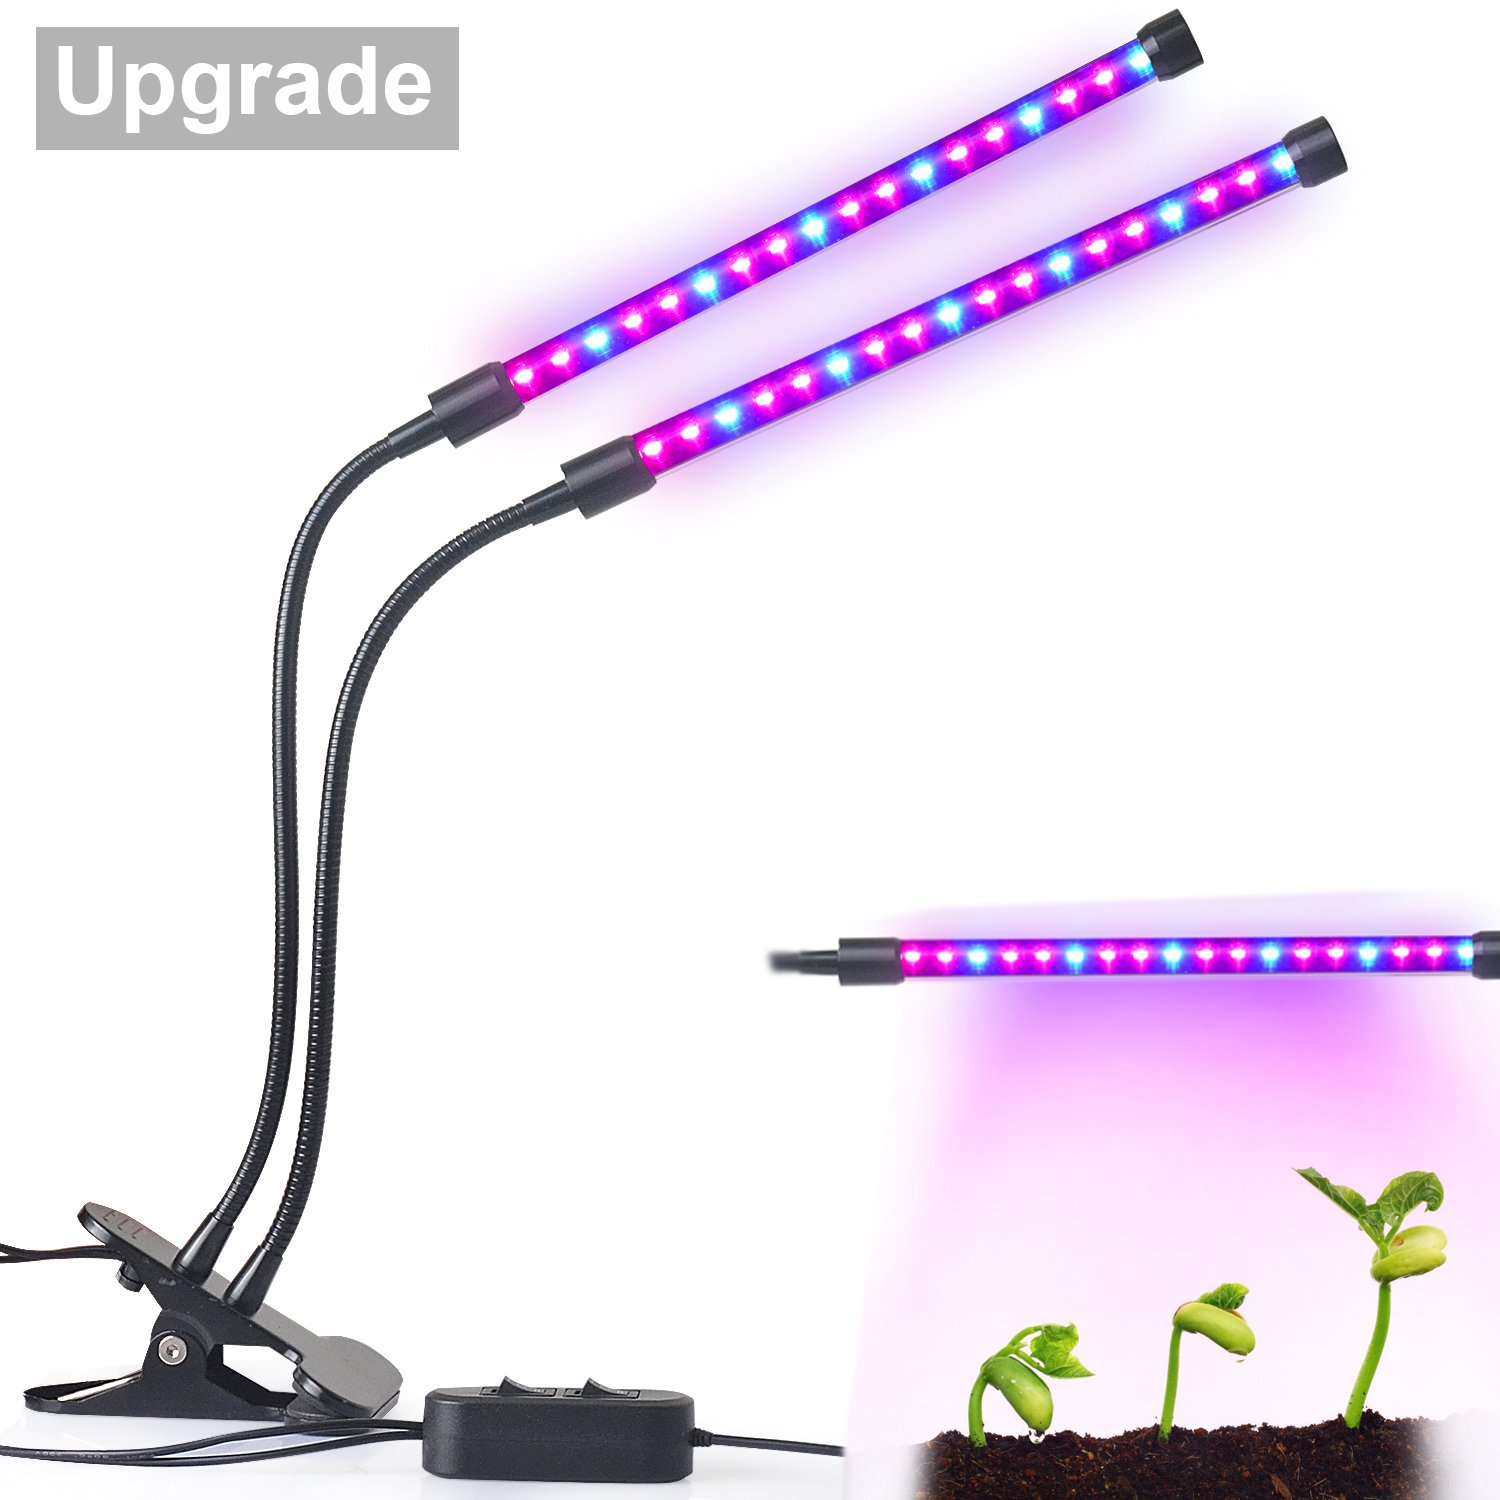 Upgraded Dual Lamp LED Grow Light Aotson 18W Dimmable 2 Levels Plant Grow  Lamp Lights